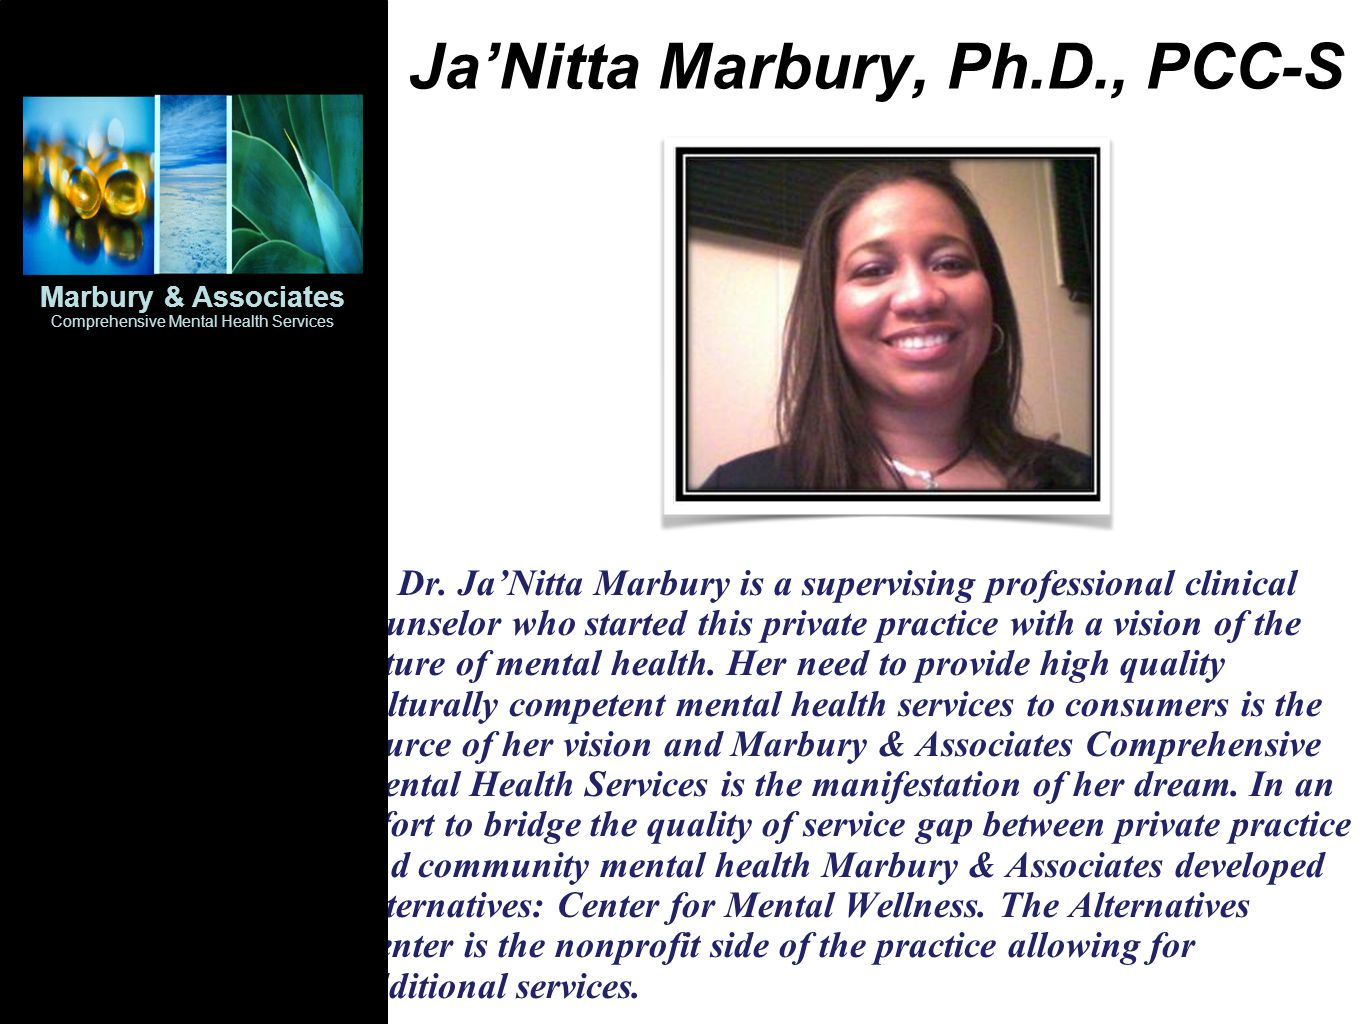 JaNitta Marbury, Ph.D., PCC-S Dr. JaNitta Marbury is a supervising professional clinical counselor who started this private practice with a vision of